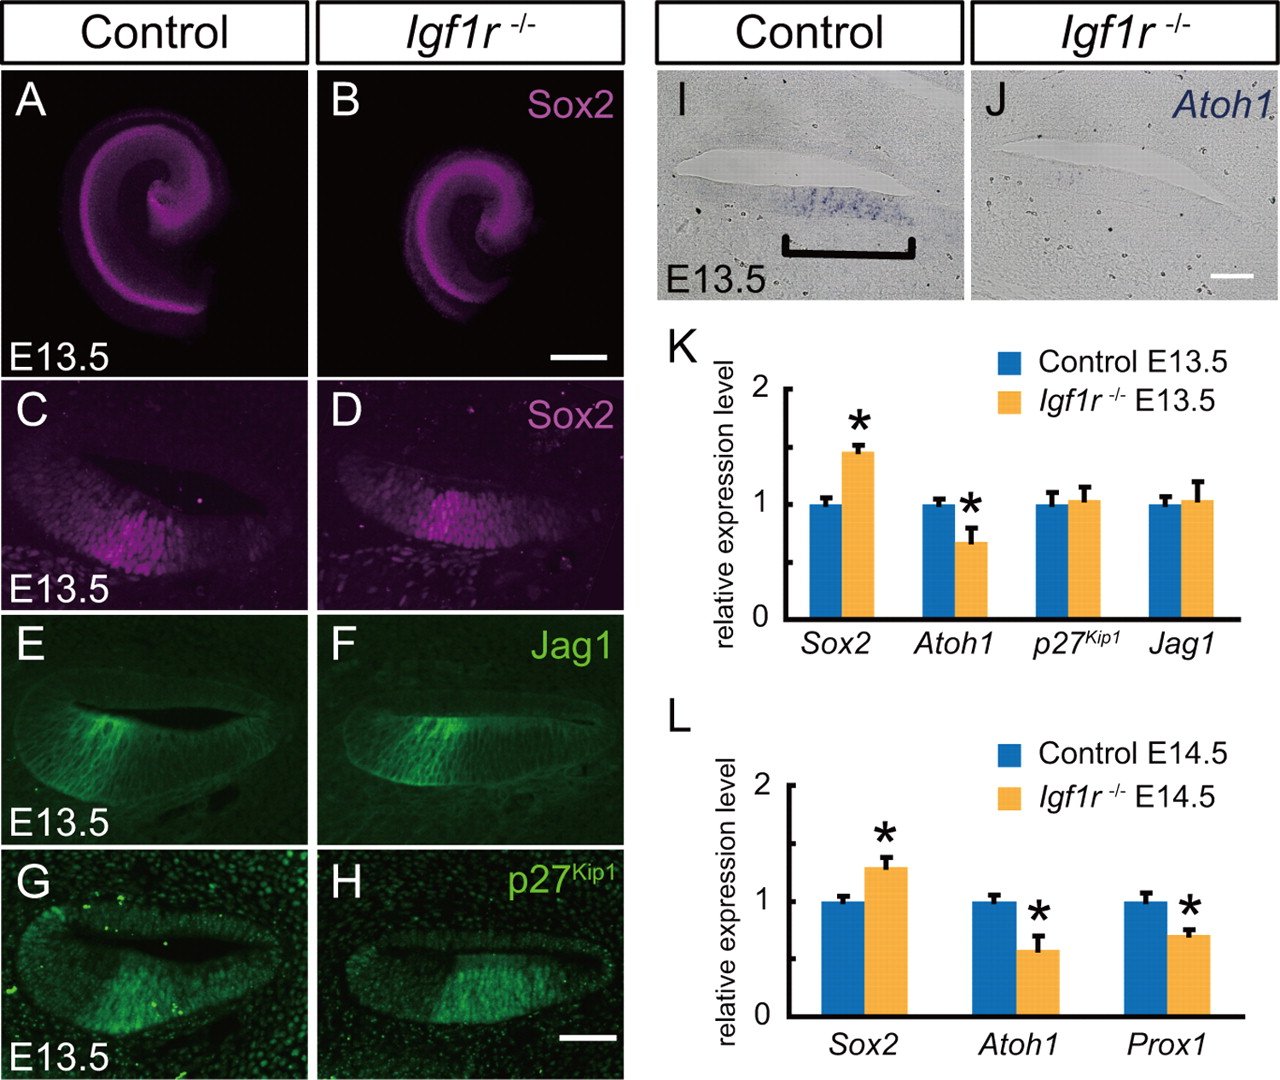 Insulin Like Growth Factor Signaling Regulates The Timing Of Sensory Xl Axis Rp 50000 Download Figure